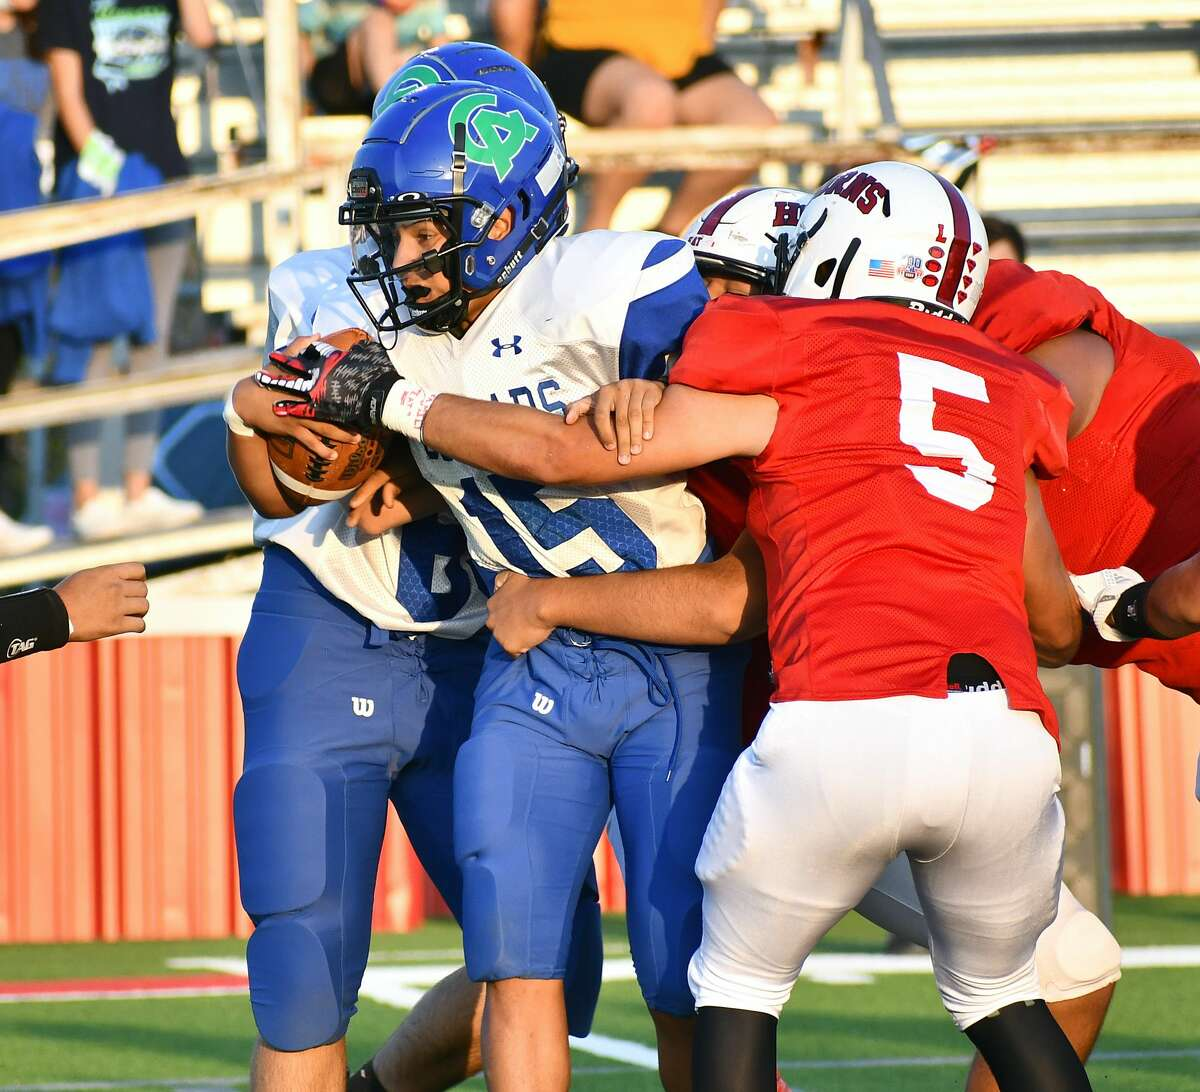 Lockney dispatched of Compass Academy 67-0 in a non-district high school football game on Friday, Sept. 25, 2020 at Lockney.